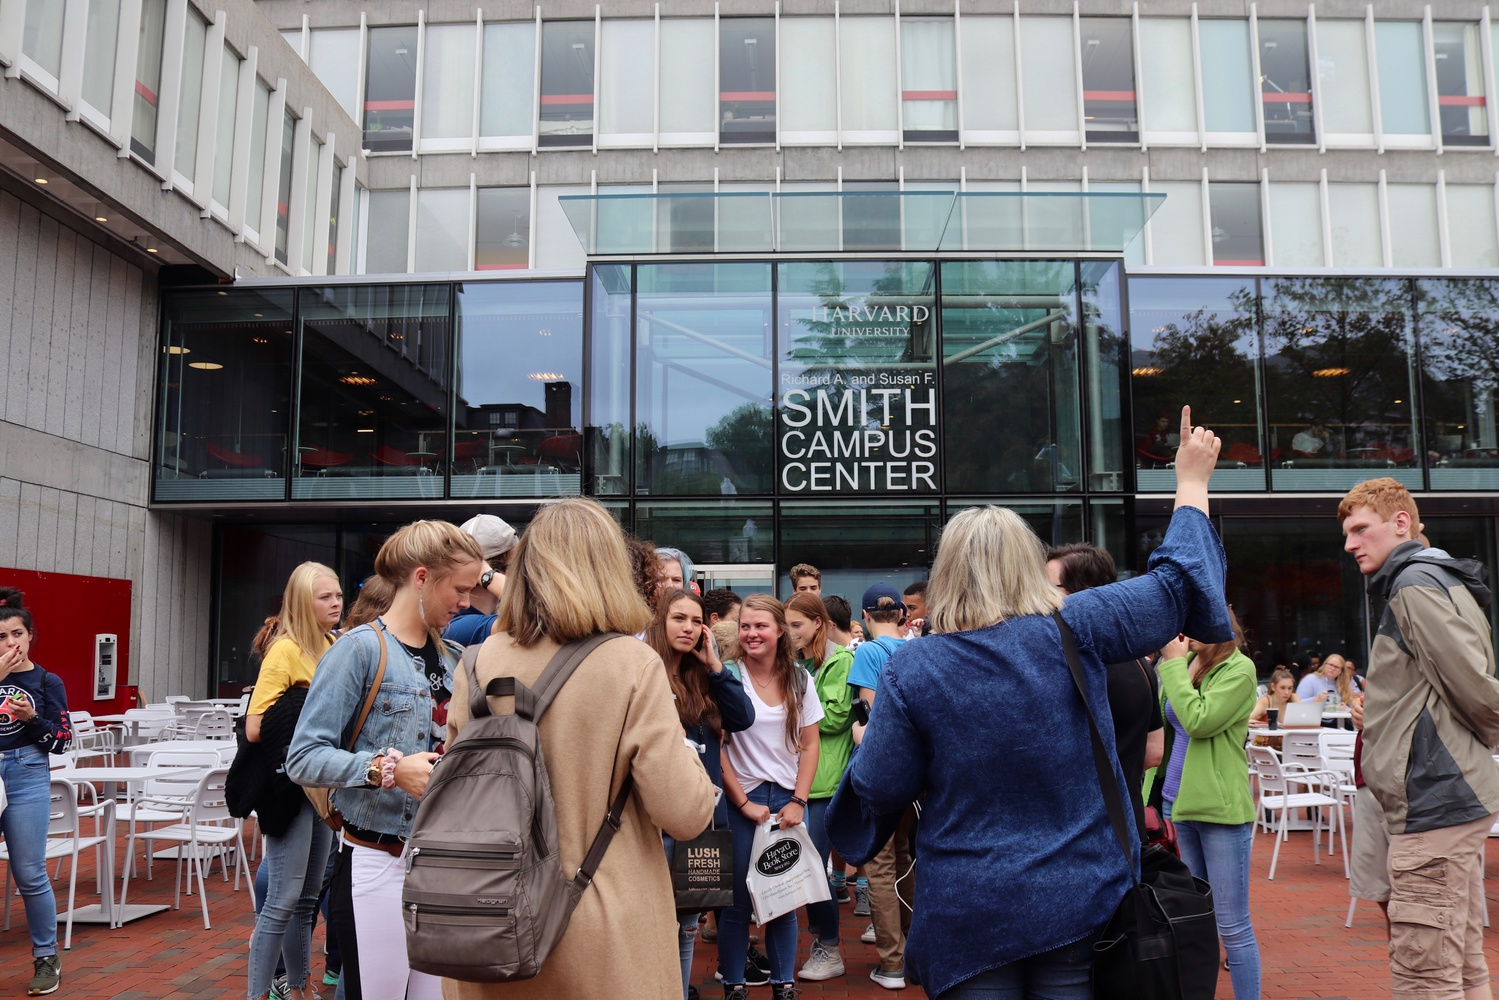 Tourists gather outside the newly renovated Richard A. & Susan F. Smith Campus Center on a warm fall afternoon.